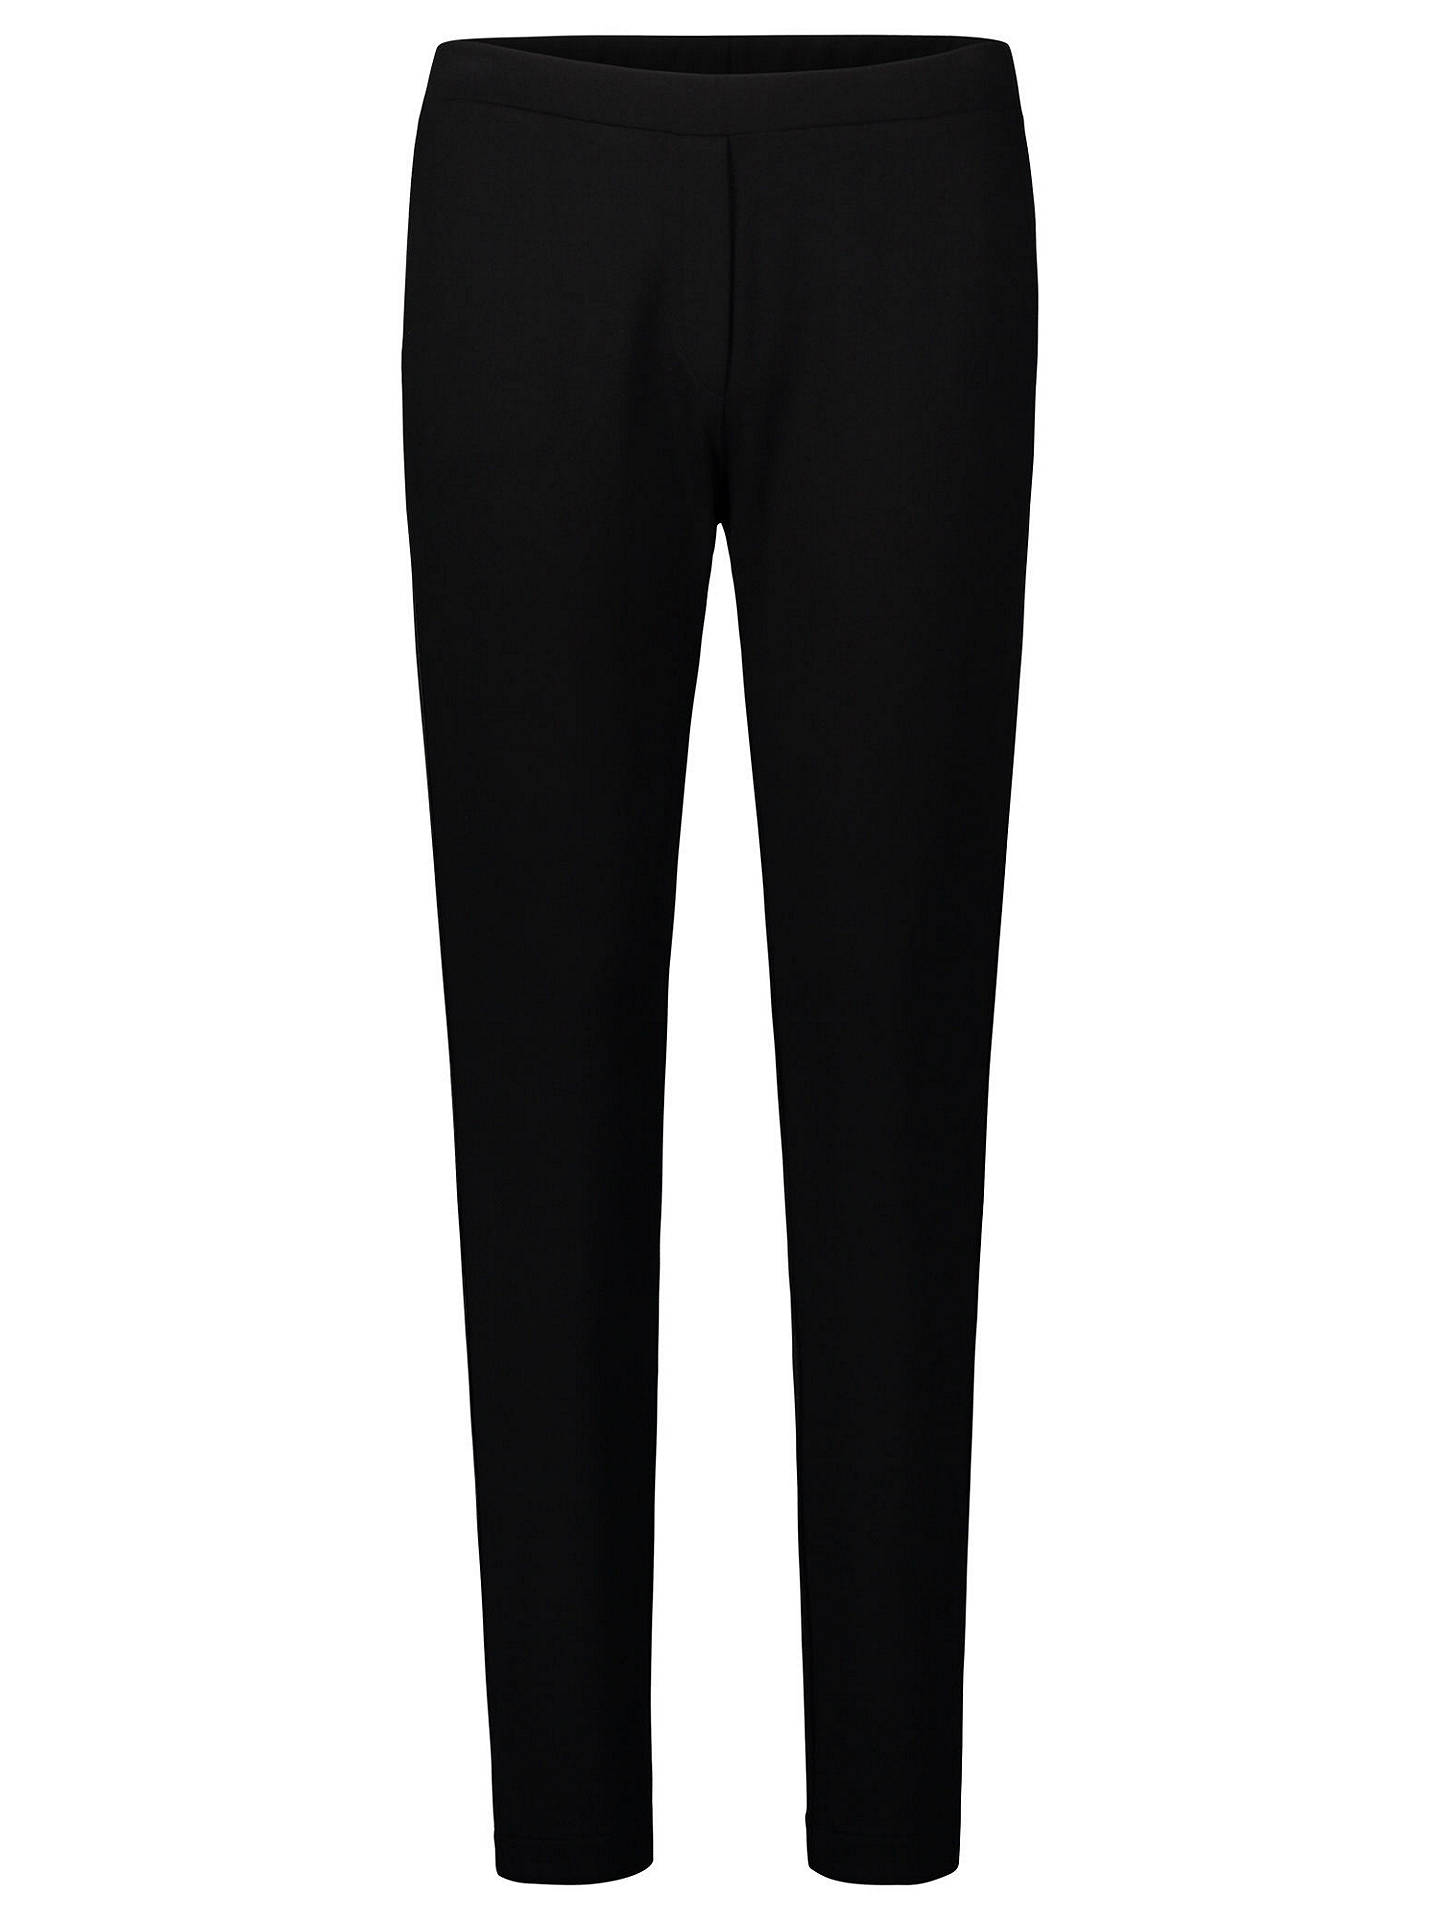 Buy Betty Barclay Jersey Trousers, Black, 12 Online at johnlewis.com